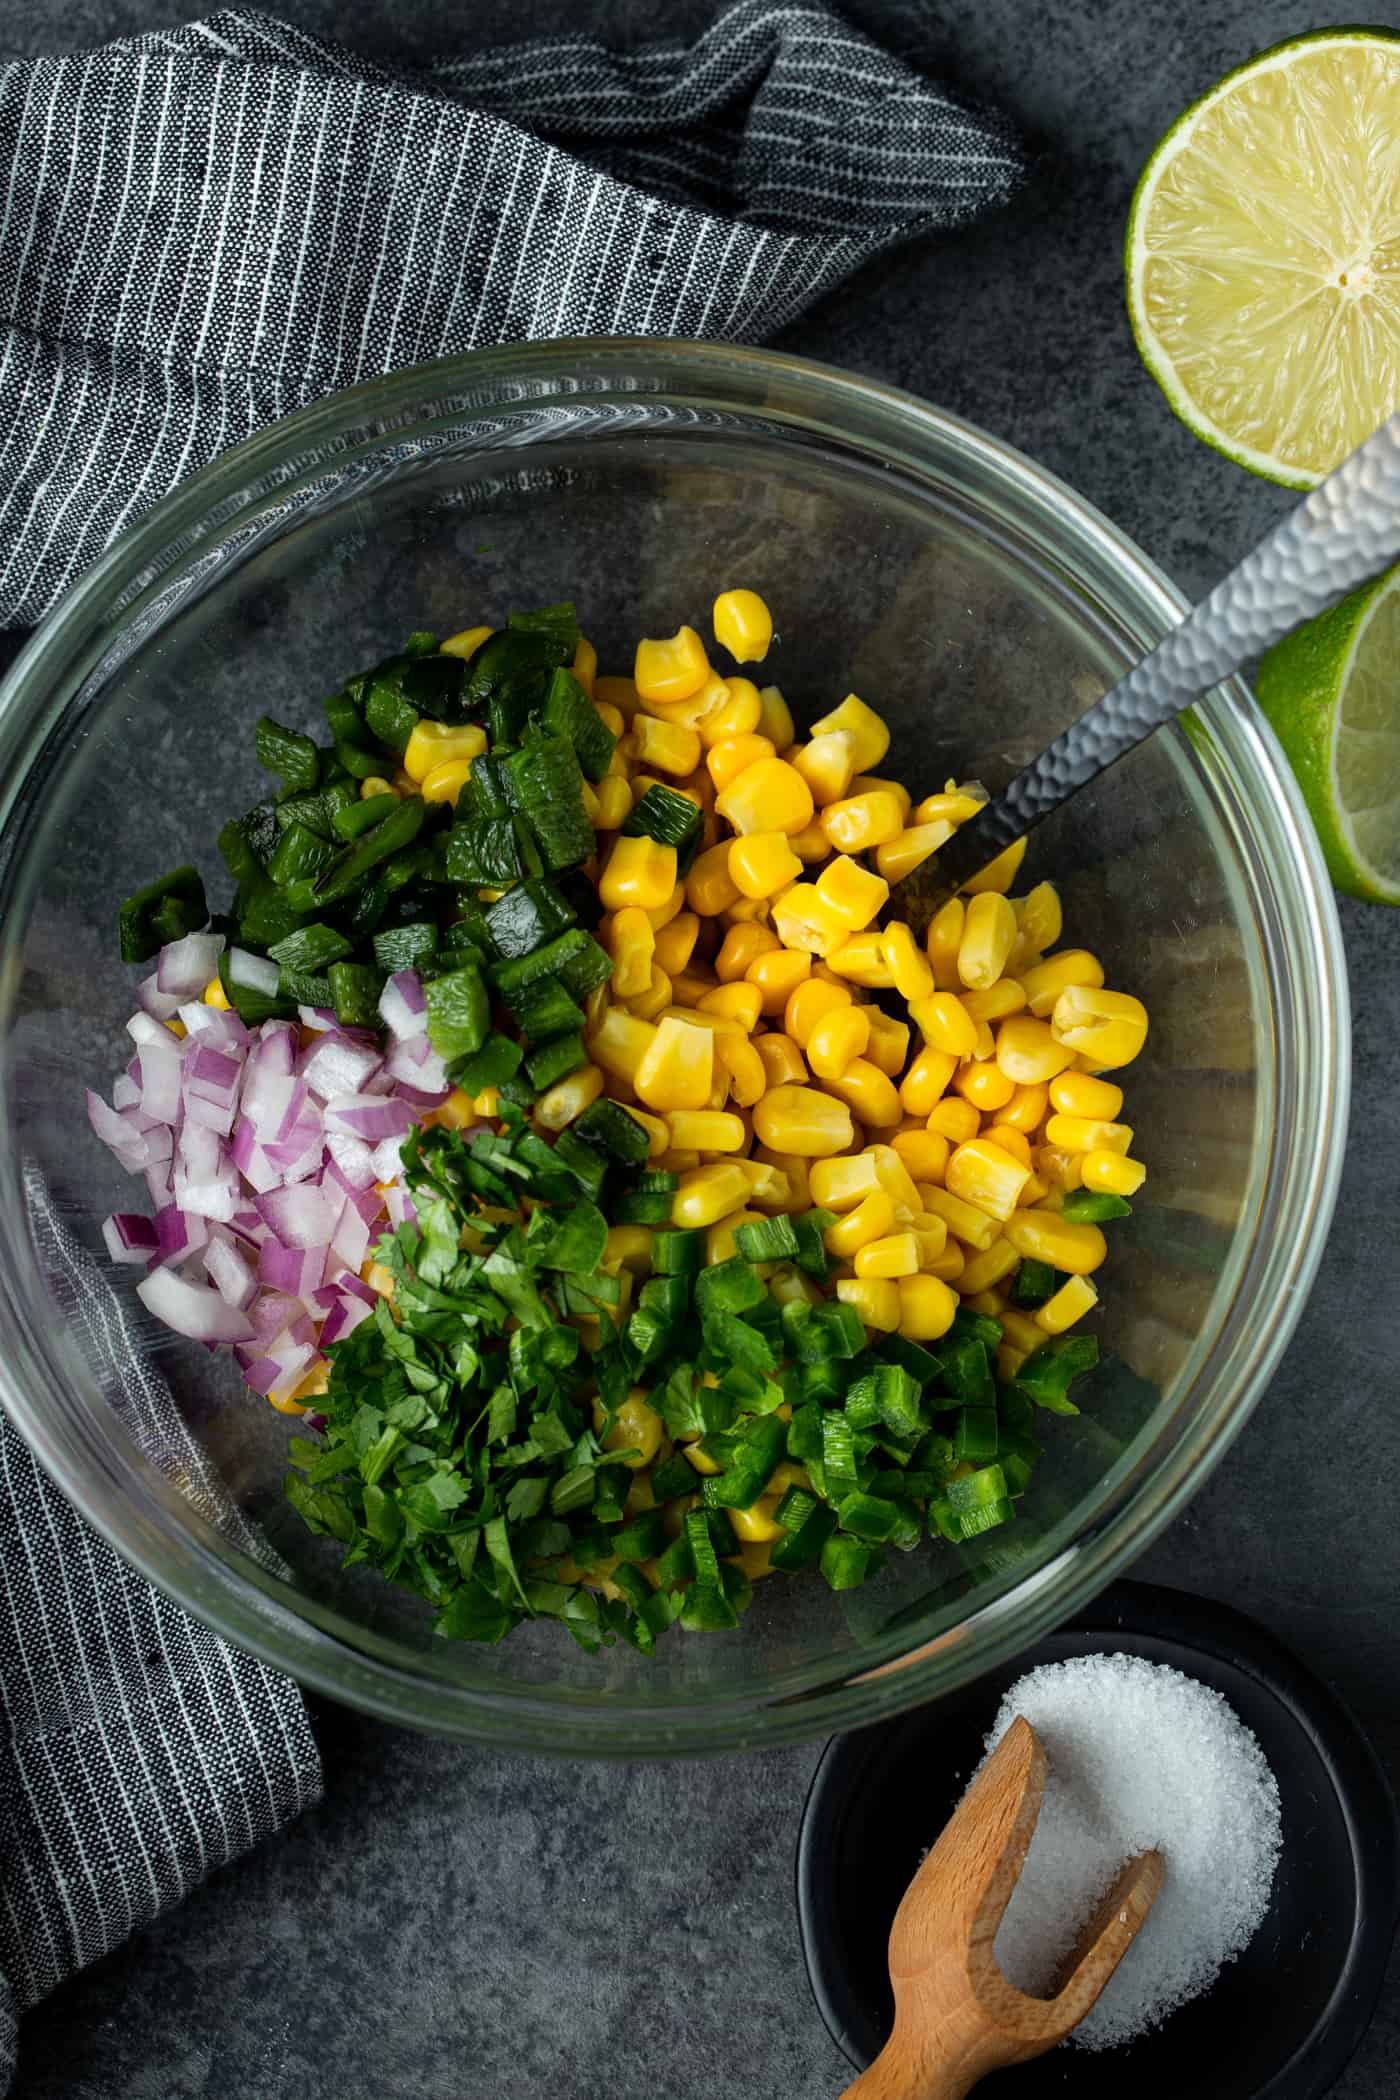 Chipotle Corn Salsa ingredients in a glass bowl